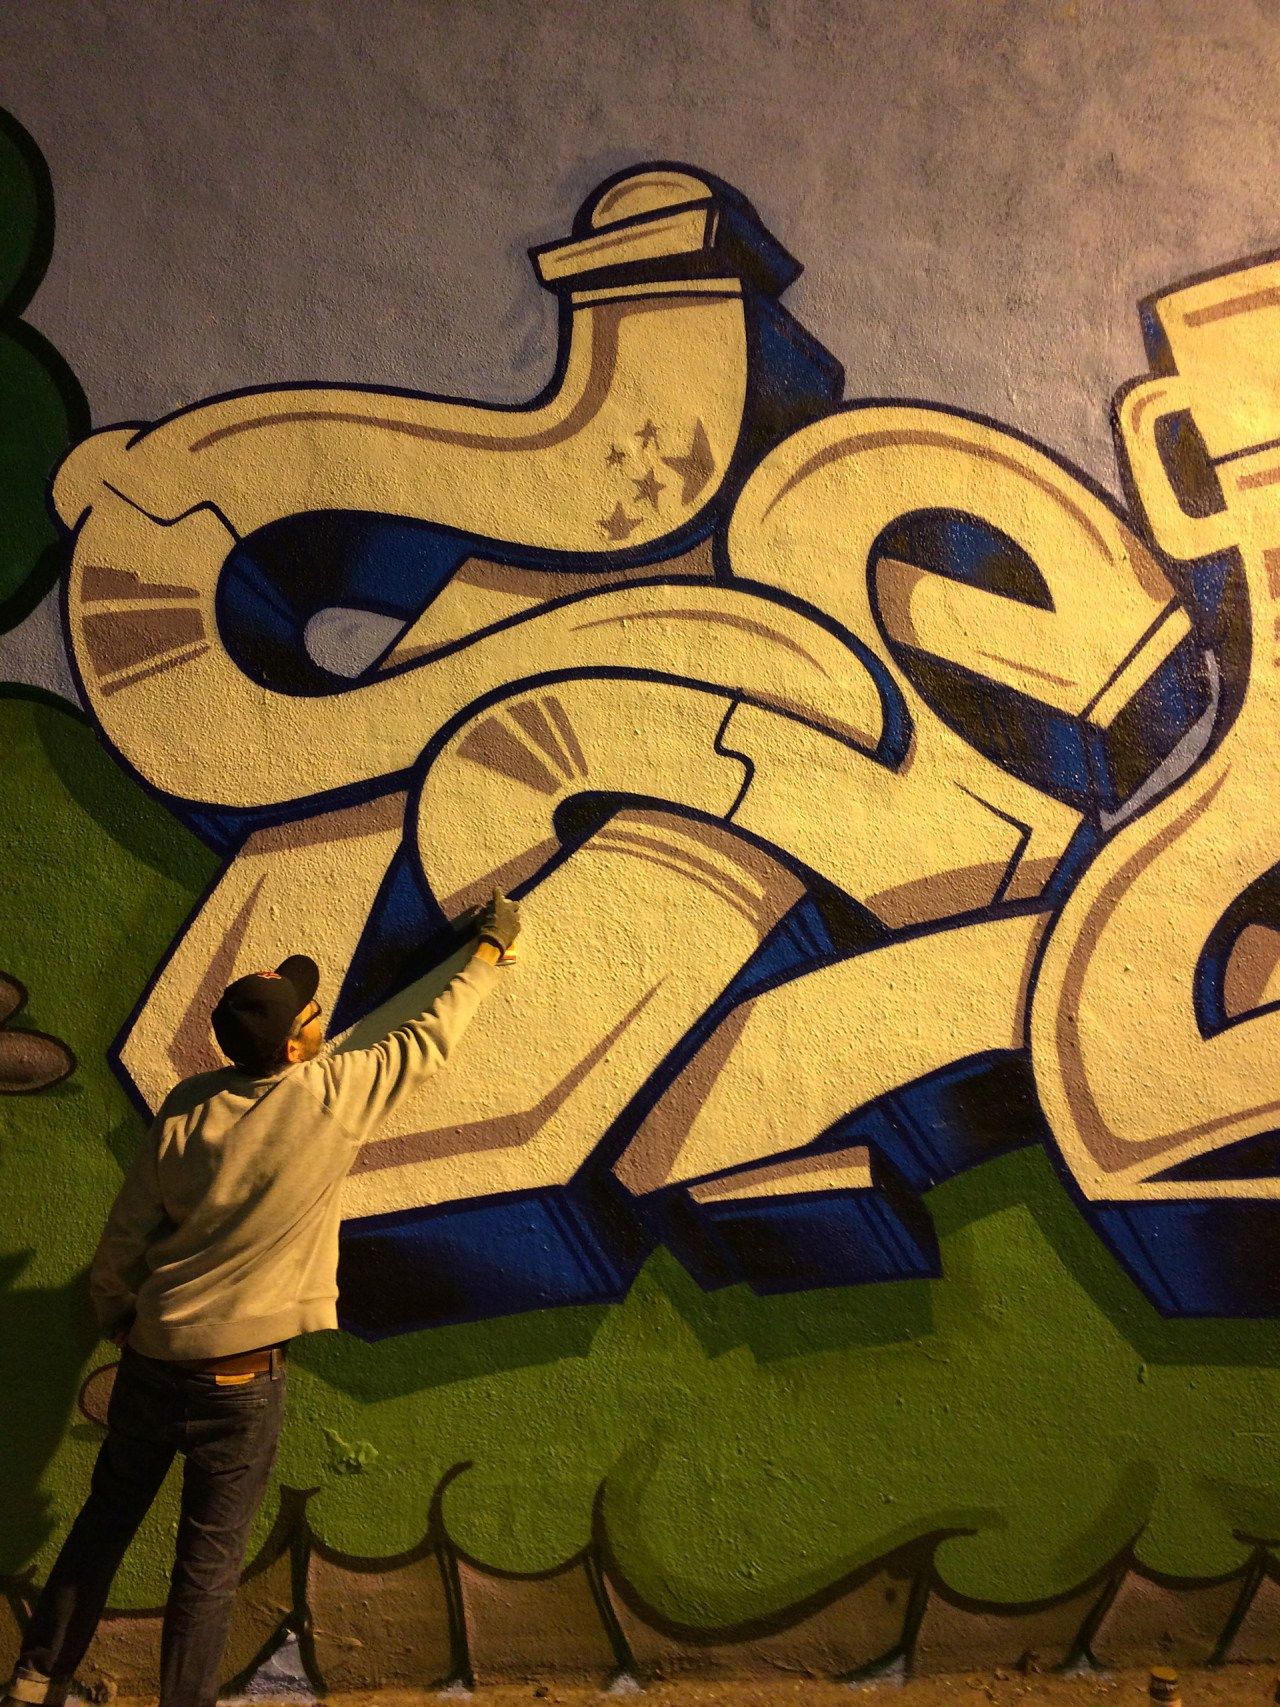 self selfuno wall mural art graffiti style letters painting action los angeles january 2014